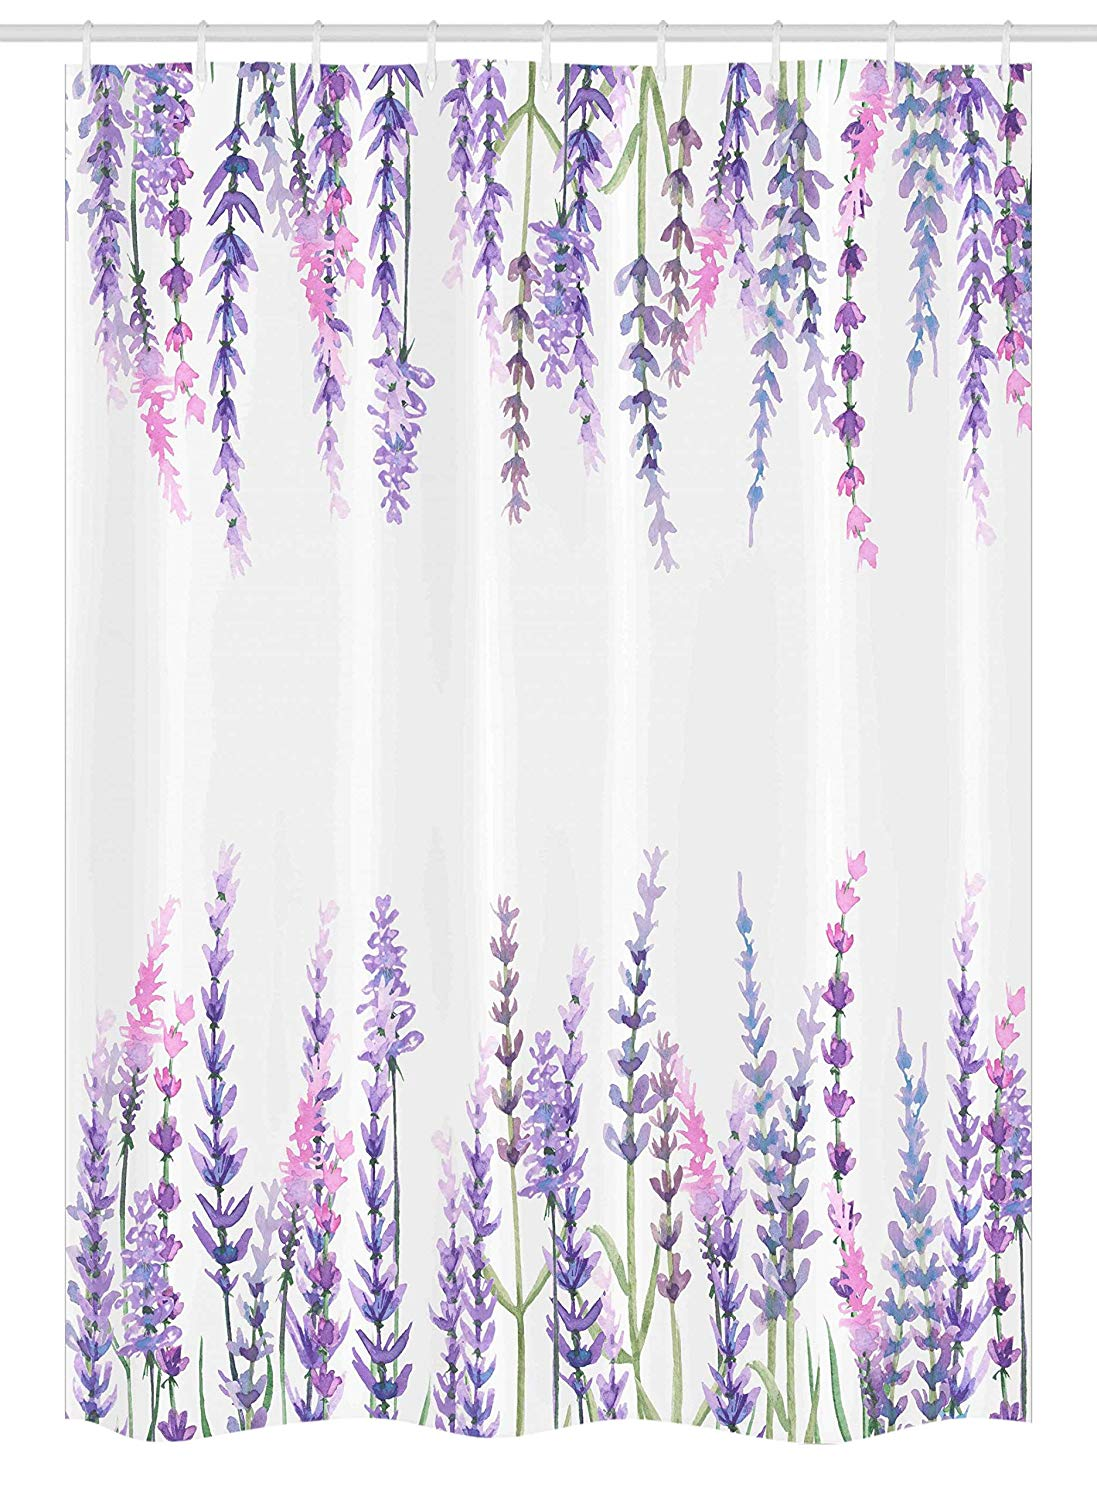 Ambesonne Purple Stall Shower Curtain, Lavender Plants Aromatic Evergreen Shrub of Mint Family Nature Oil Country Style Print, Fabric Bathroom Decor Set with Hooks, 54 W x 78 L Inches, Lilac